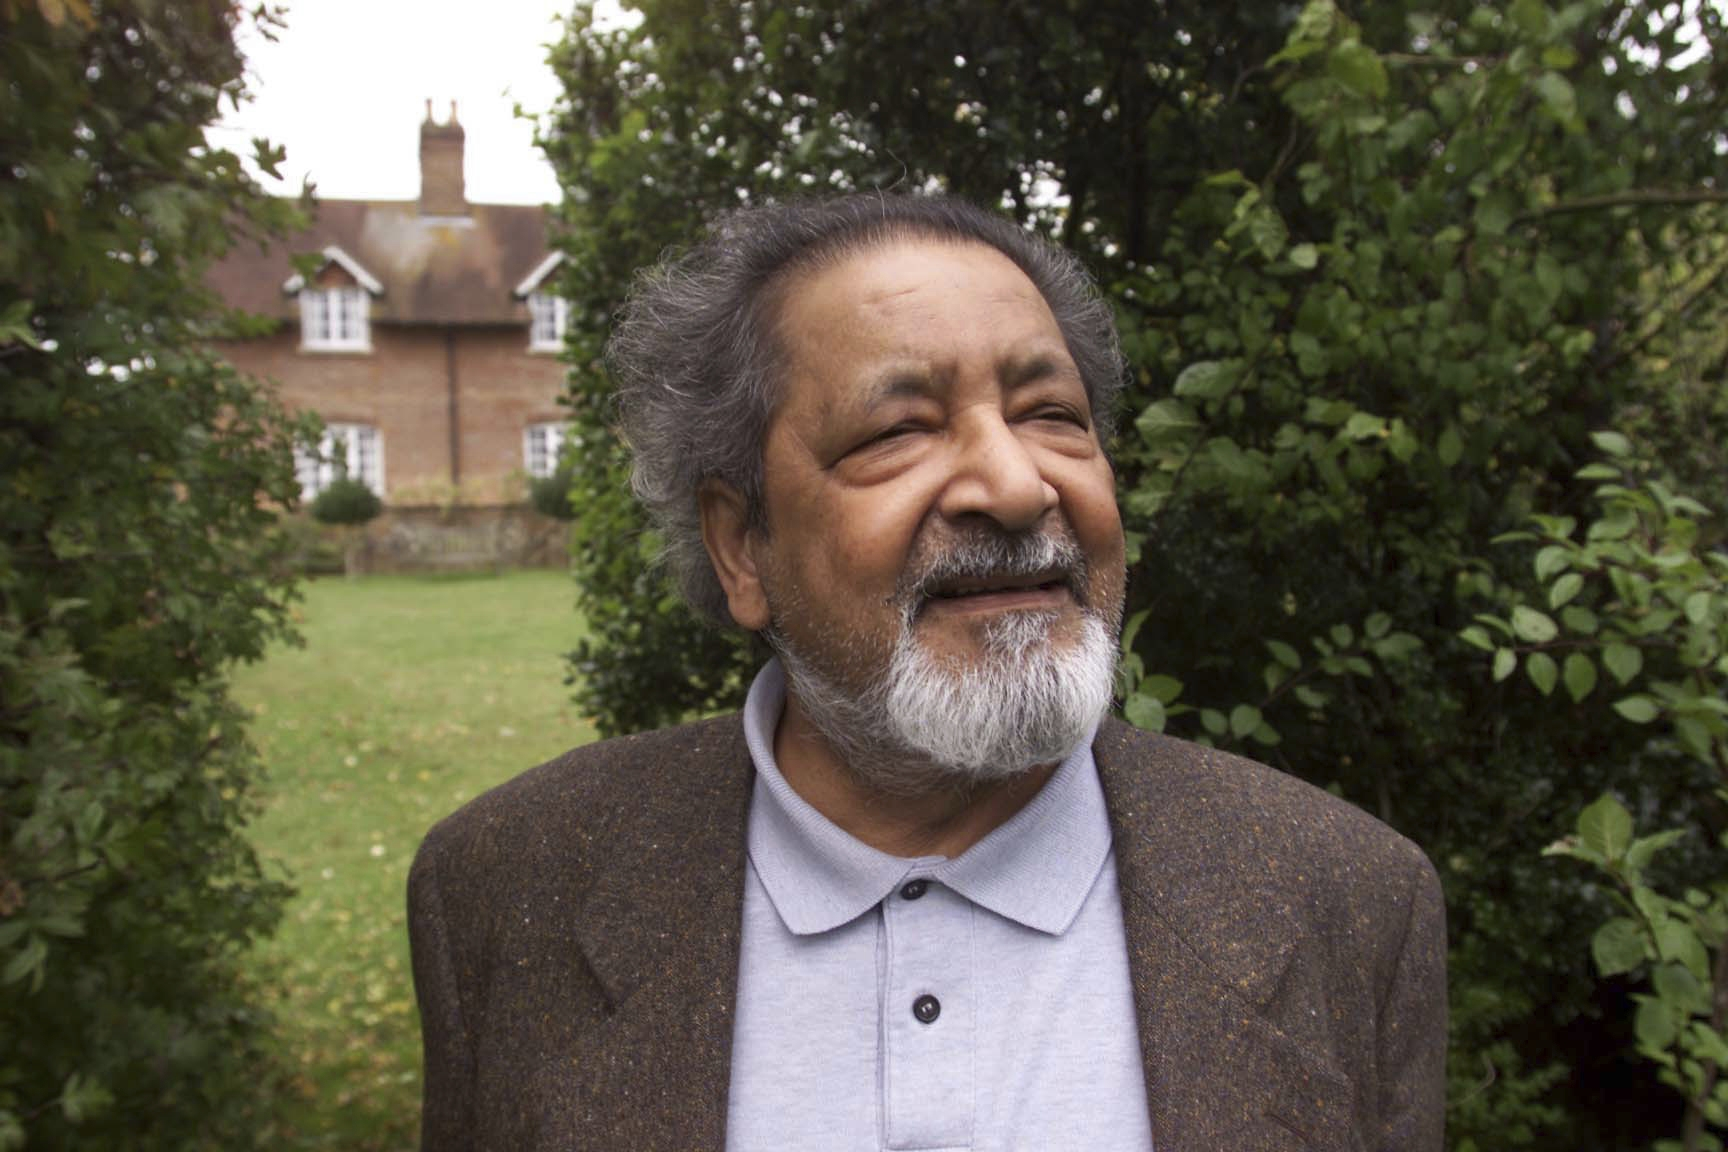 FILE - This 2001 file photo shows British author V.S. Naipaul in Salisbury, England. The Trinidad-born Nobel laureate whose celebrated writing and brittle, provocative personality drew admiration and revulsion in equal measures, died Saturday, Aug. 11, 2018, at his London home, his family said. He was 85. (Chris Ison/PA via AP)